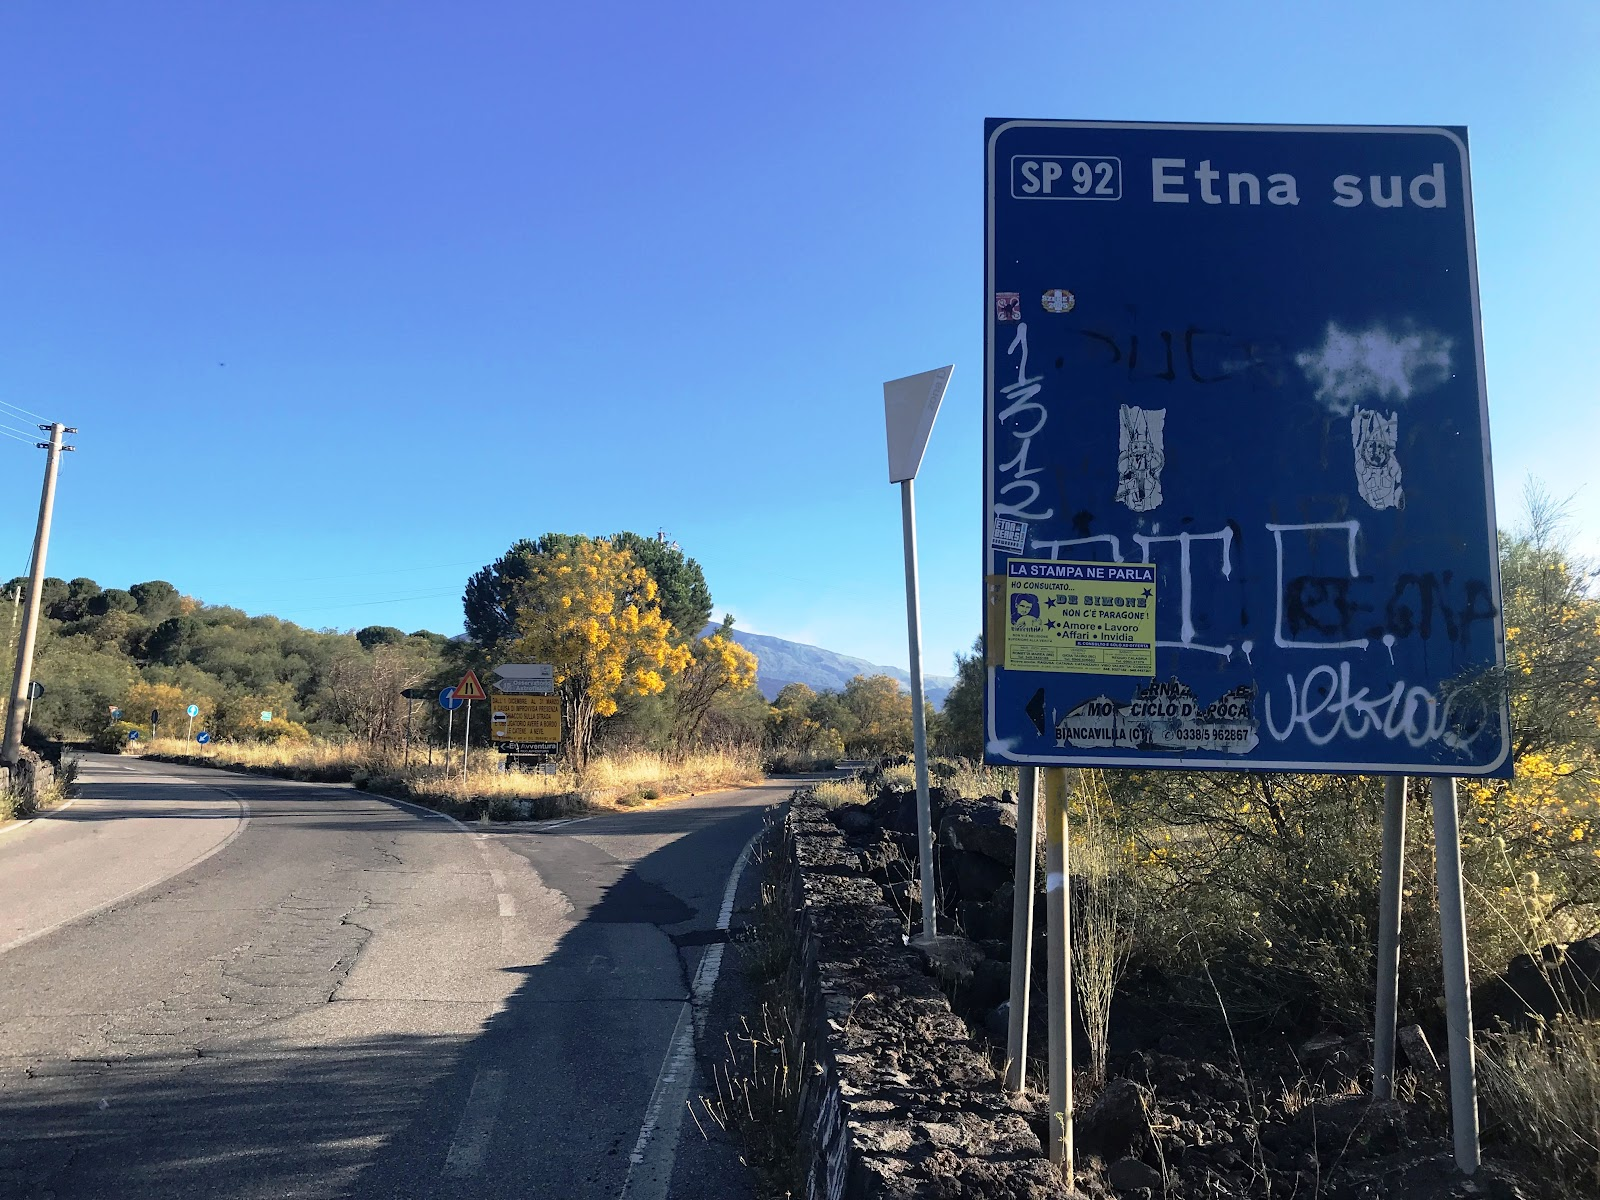 Road bike to Mount Etna - sign to SP 92